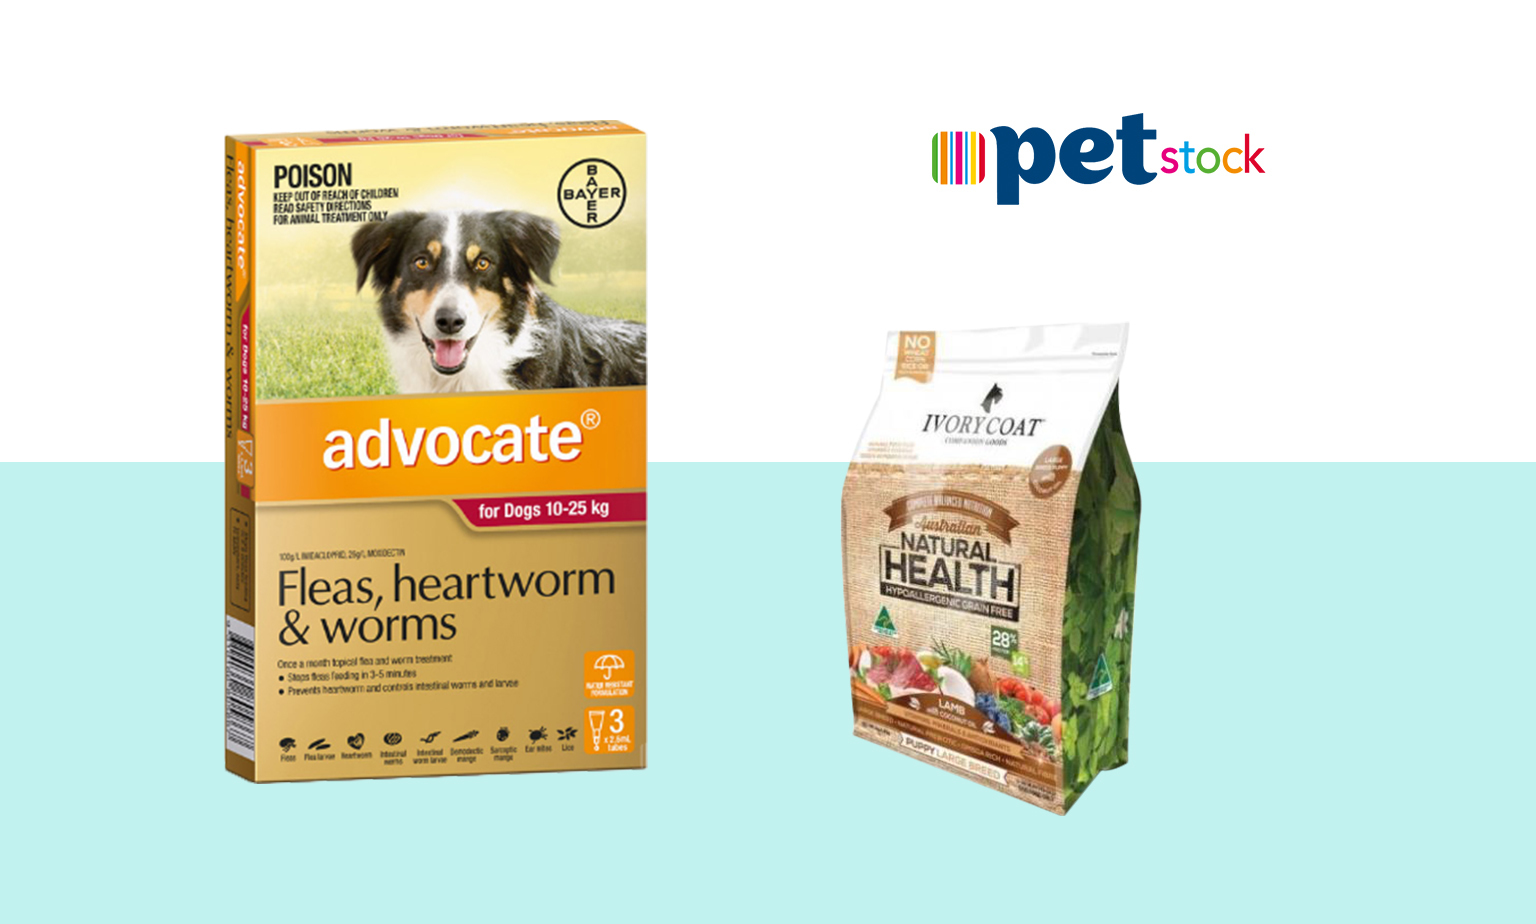 20% off at Petstock*